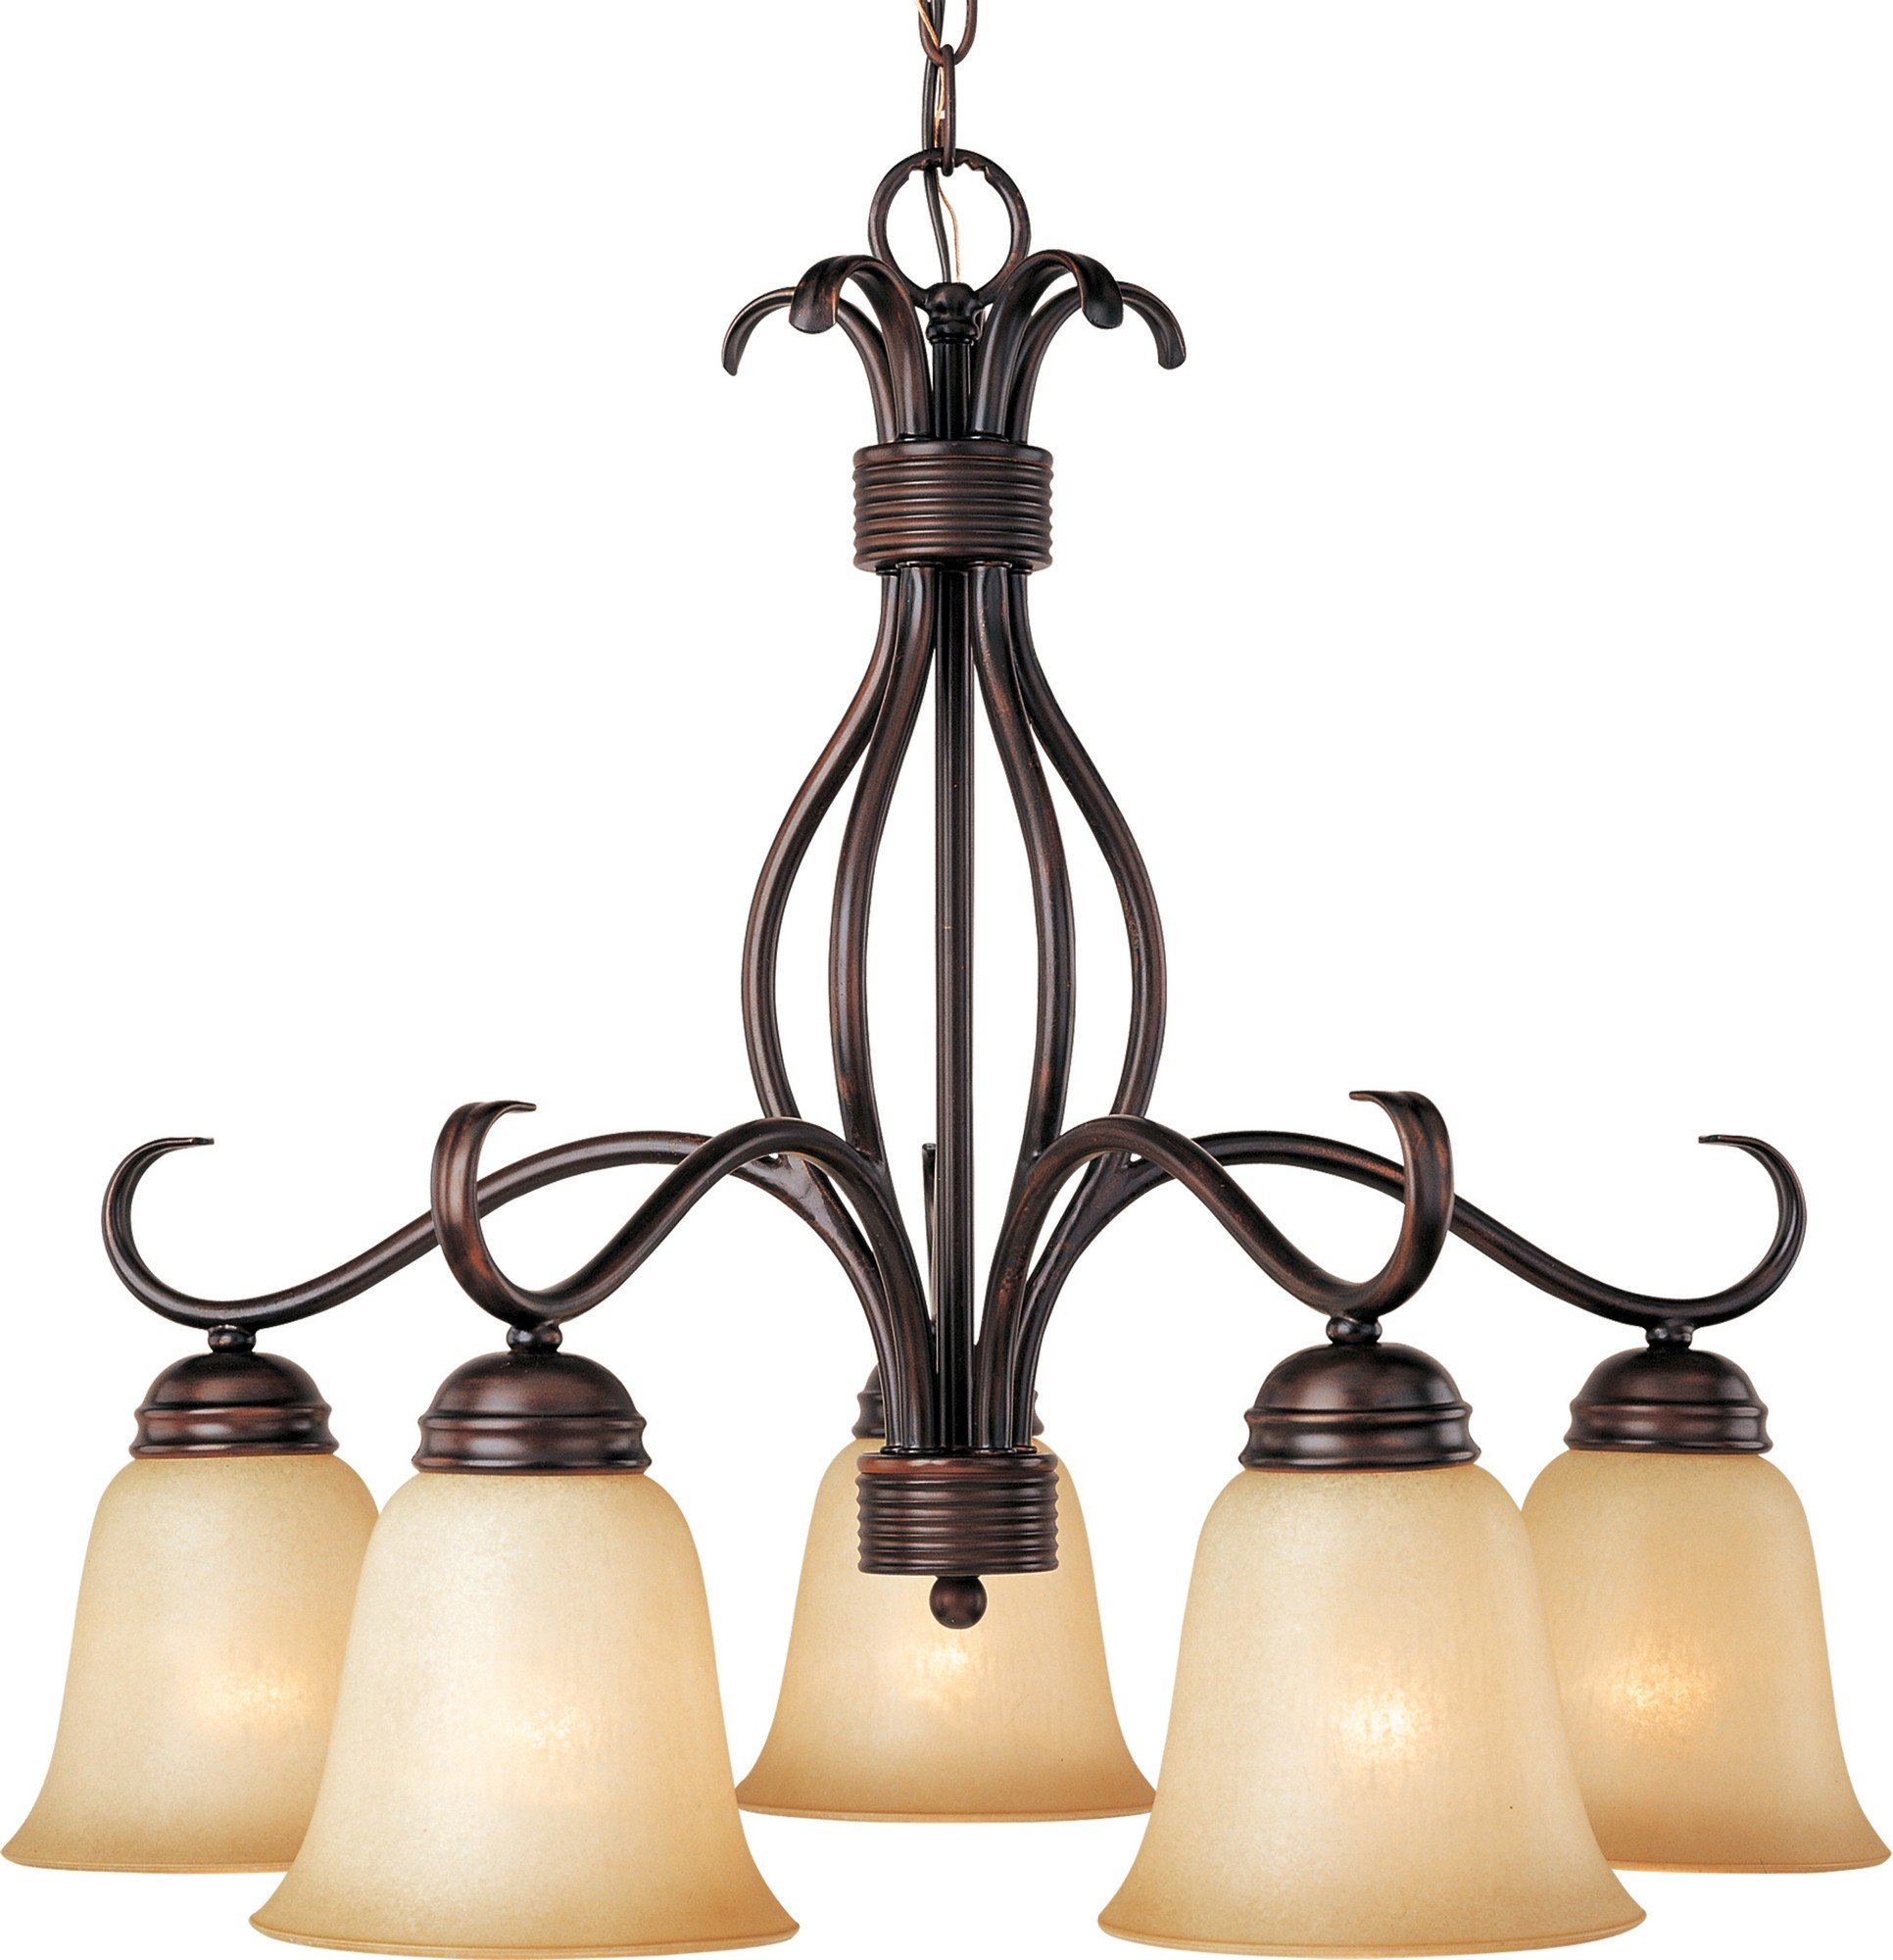 Maxim Lighting 10124WSOI Basix 5-Light Chandelier Down Light,with Wilshire Glass, Oil Rubbed Bronze - Finish: Oil Rubbed Bronze Glass finish: wilshire Bulb Type: MB incandescent - kitchen-dining-room-decor, kitchen-dining-room, chandeliers-lighting - 81kDp%2B%2BkHiL -